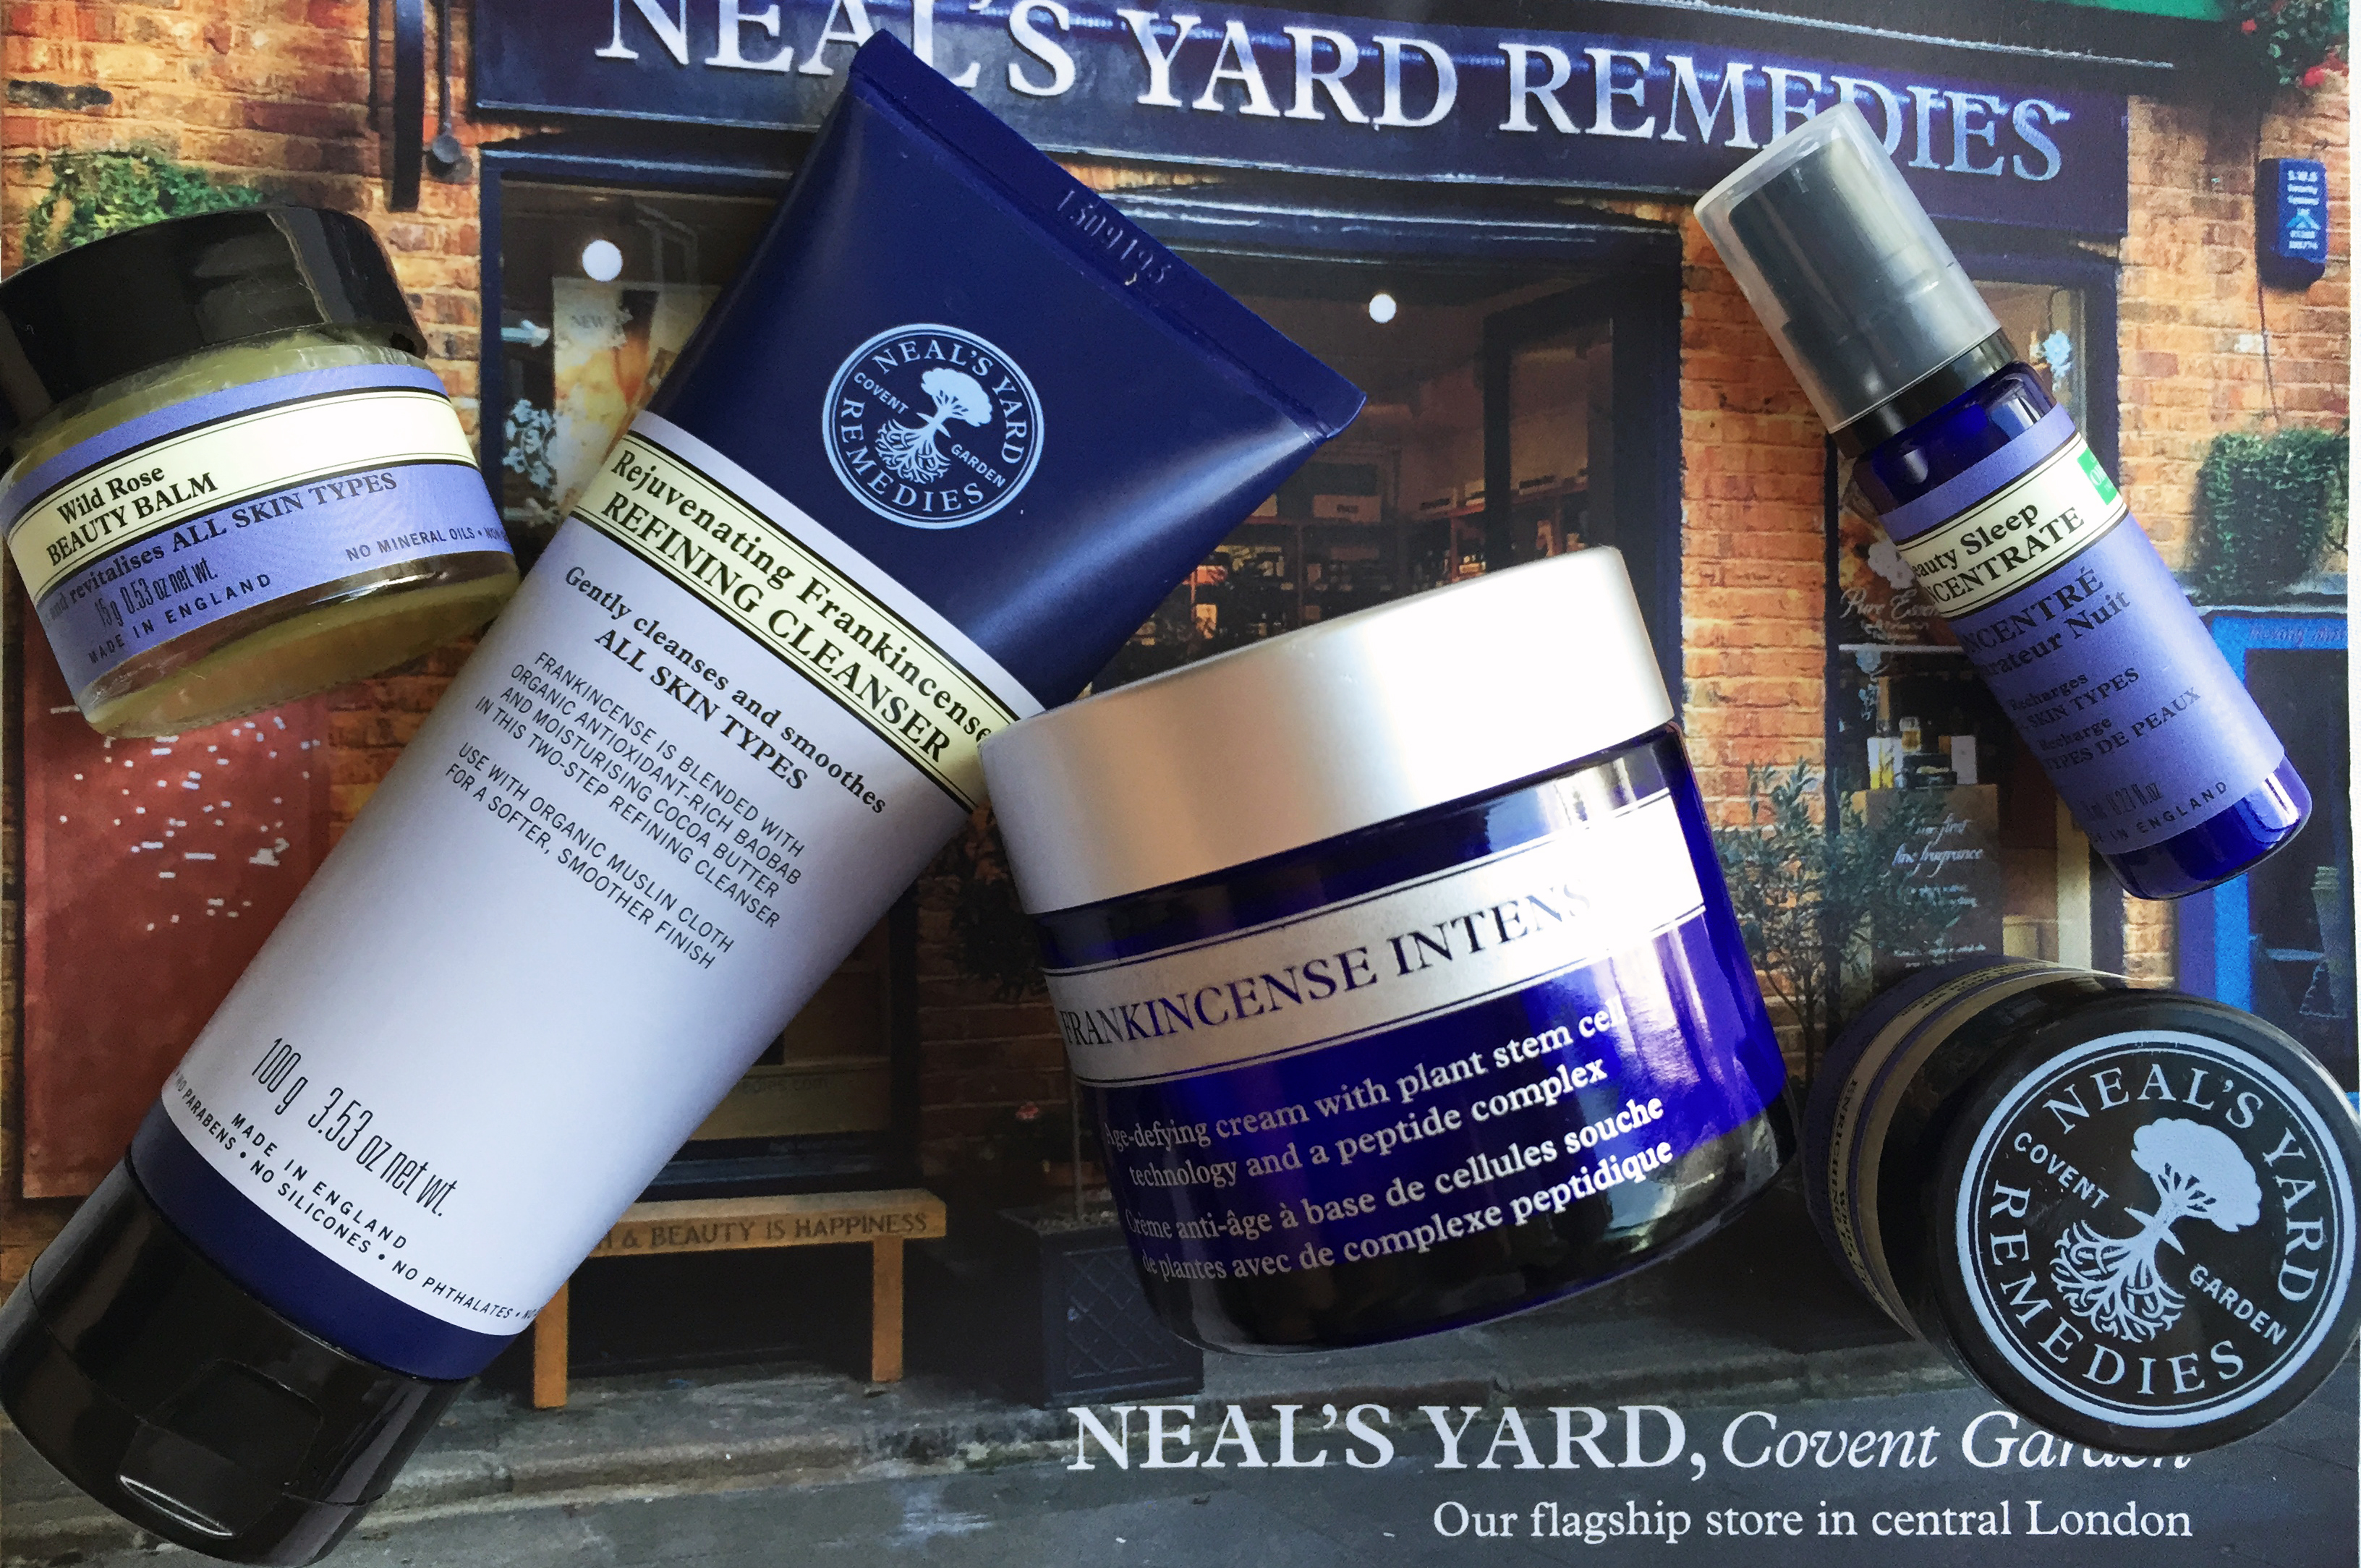 Organic Beauty Products >> My First Foray into Neal's Yard Remedies Skincare